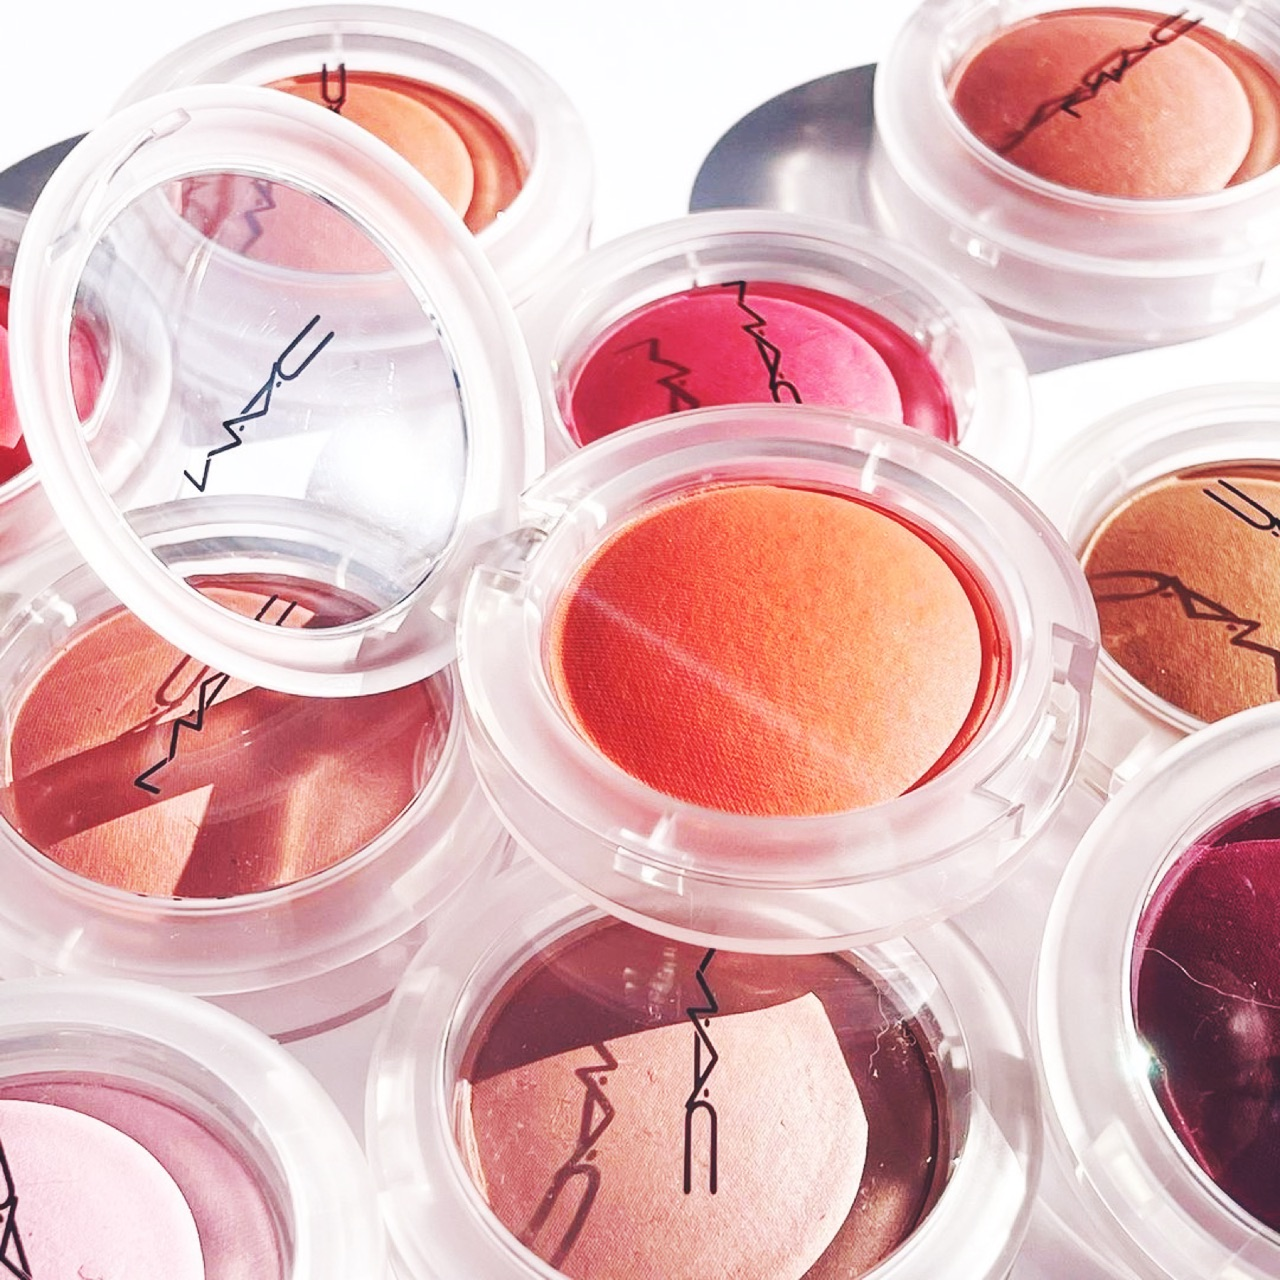 cosmetics, M.A.C, and make up image